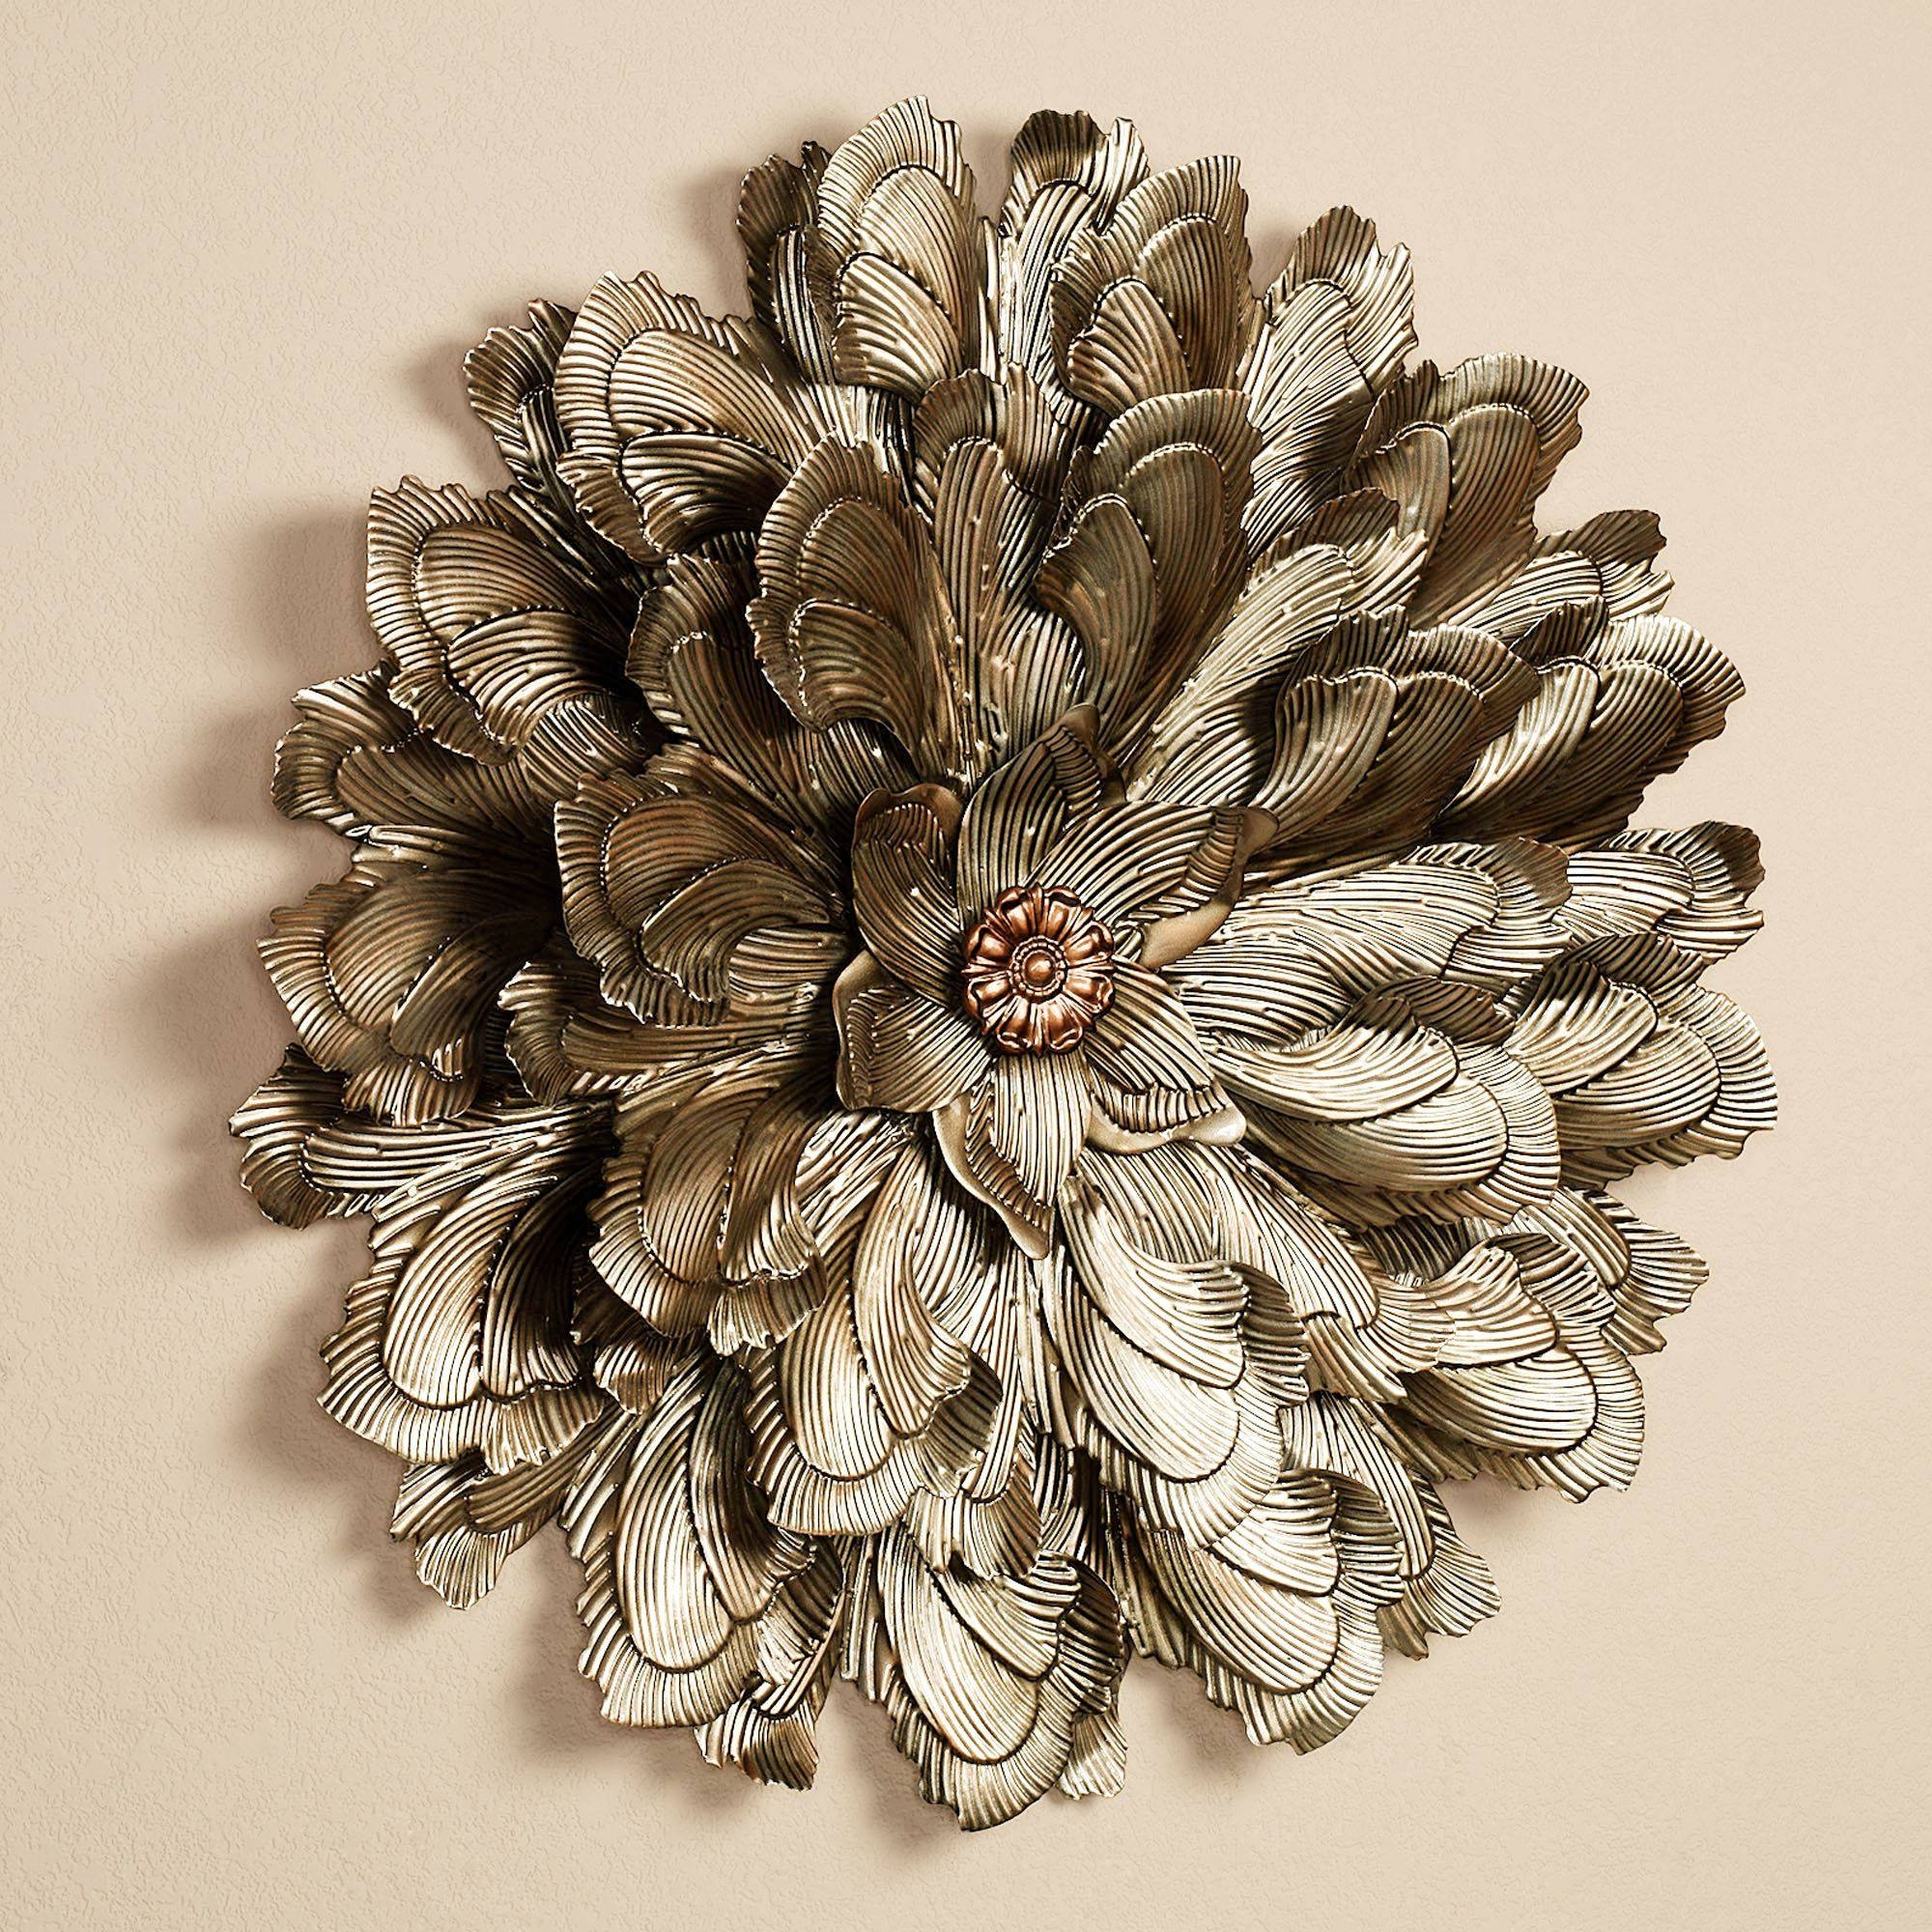 41 Silver Metal Wall Art Flowers, Home Metal Wall Art Wall Decor Intended For 2018 Large Metal Wall Art Sculptures (View 10 of 20)